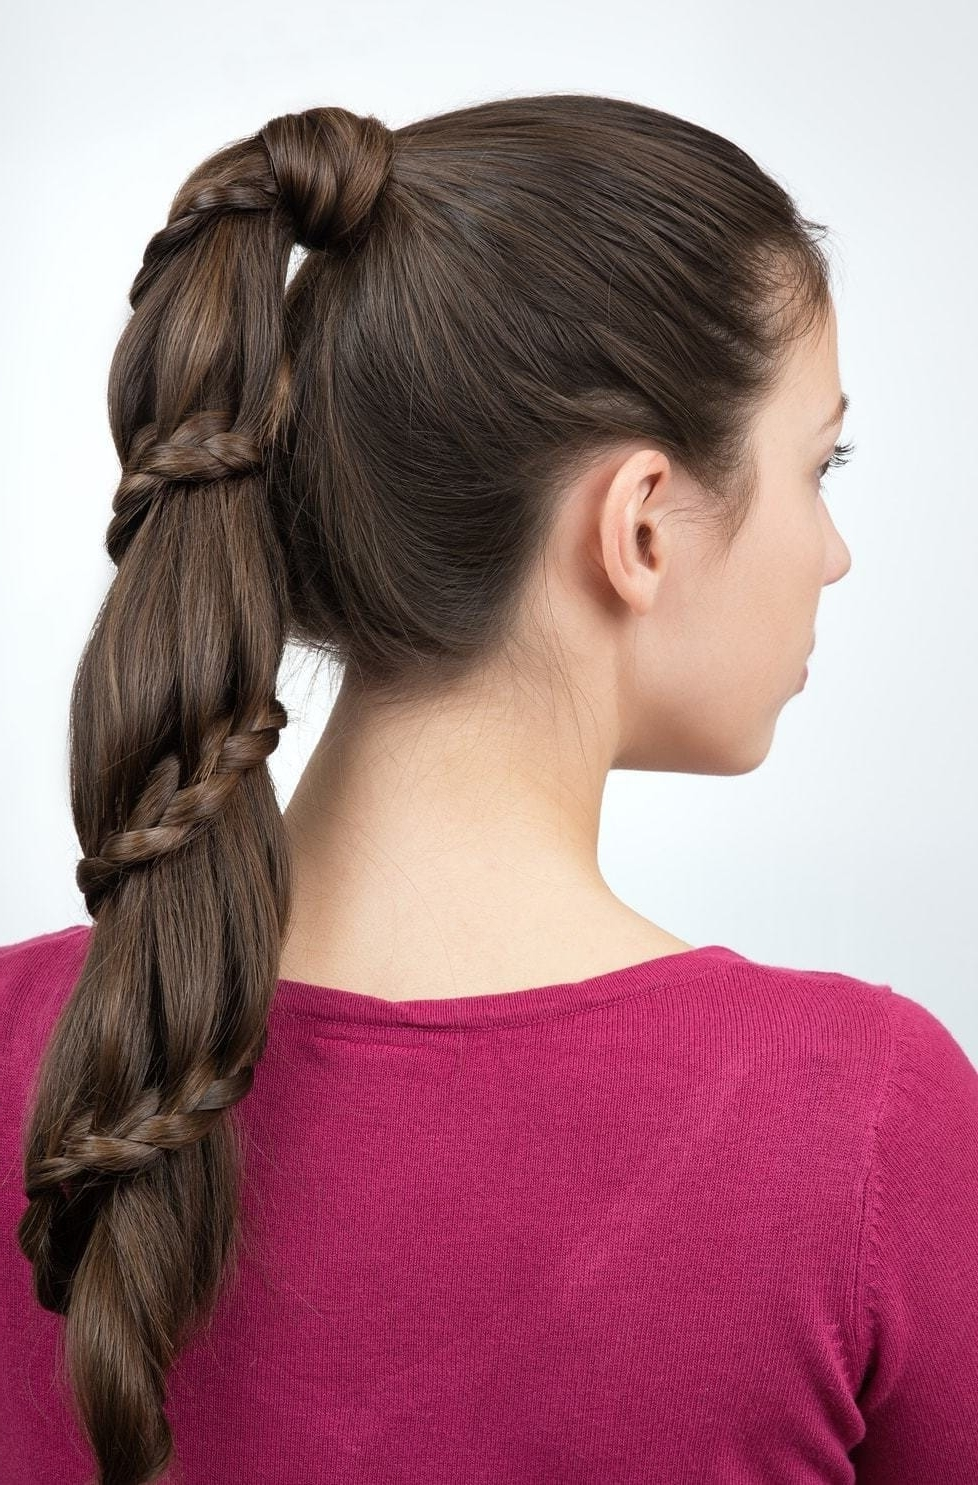 Fashionable Regal Braided Up Do Ponytail Hairstyles Regarding Long Hair Updos: 25 Styles That Are Fitting For Any Occasion (View 11 of 20)